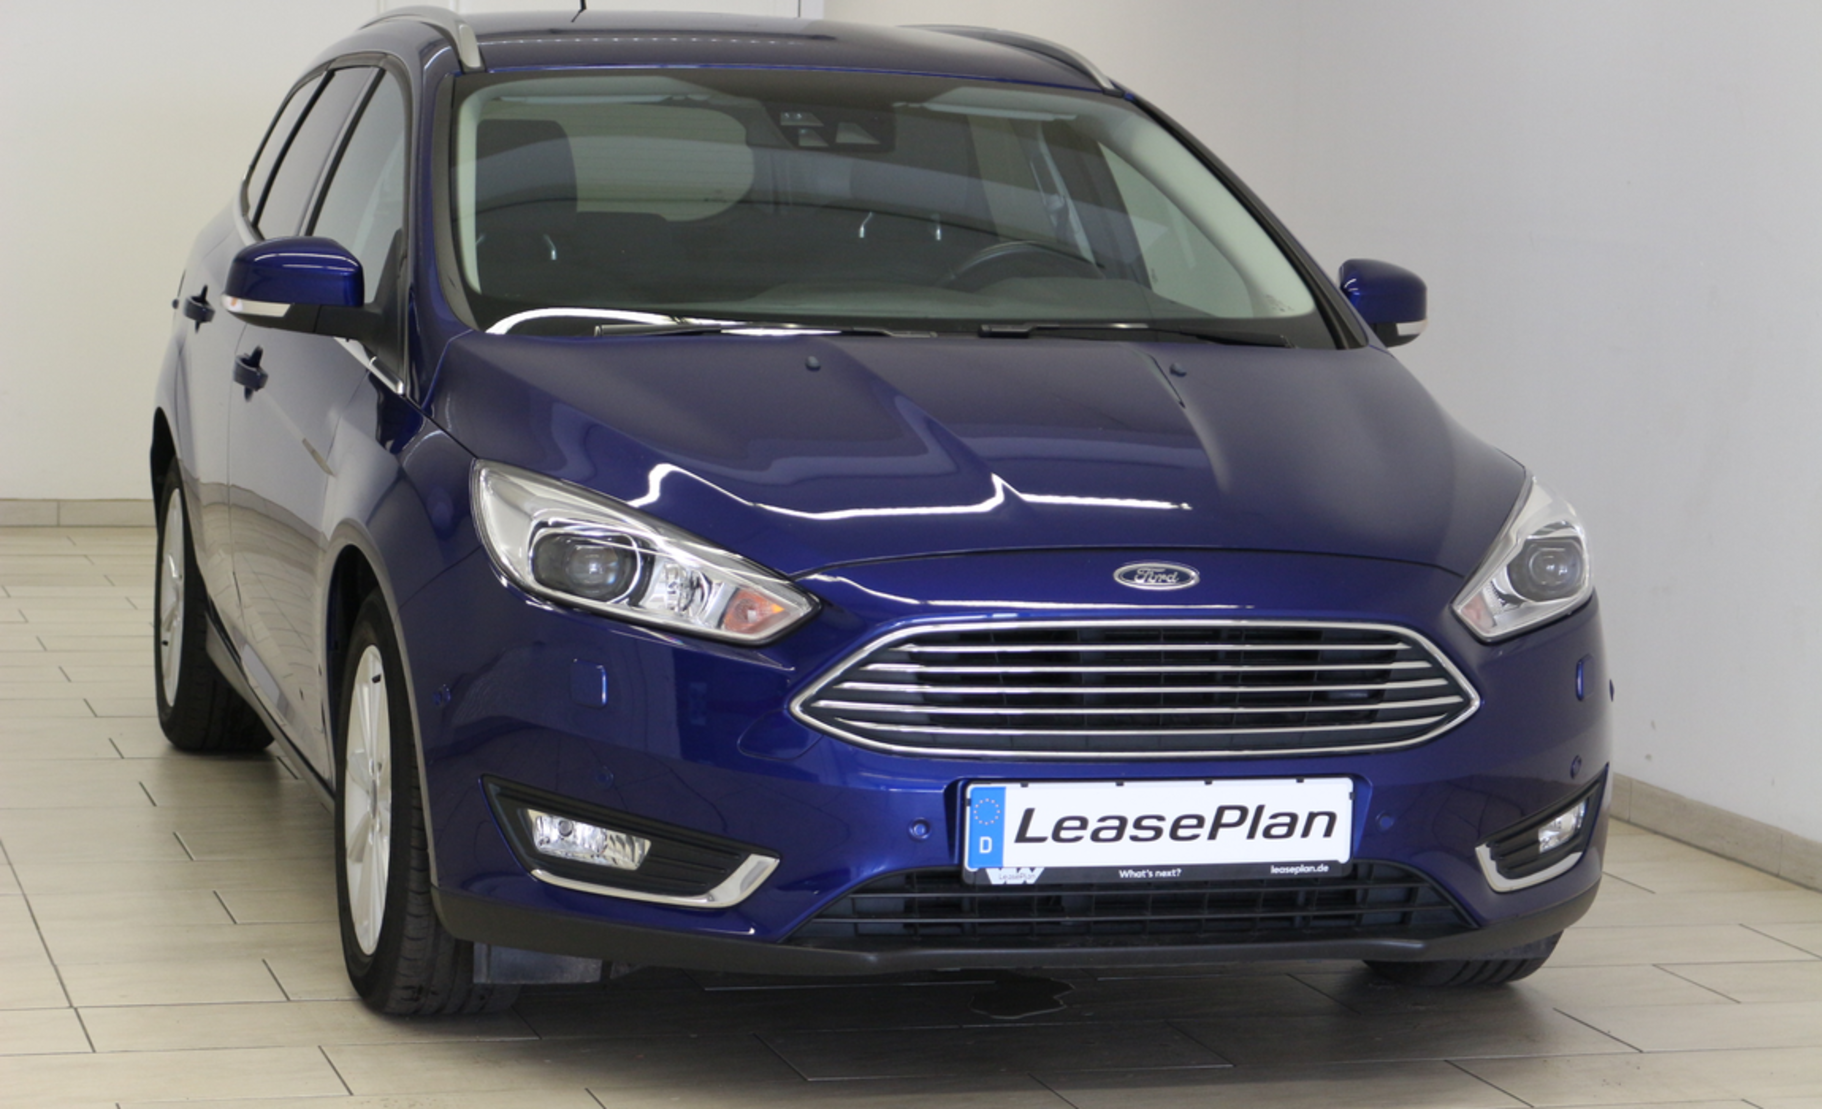 Ford Focus Turnier 1.5 EcoBoost Start-Stopp-System Titanium (589709) detail1